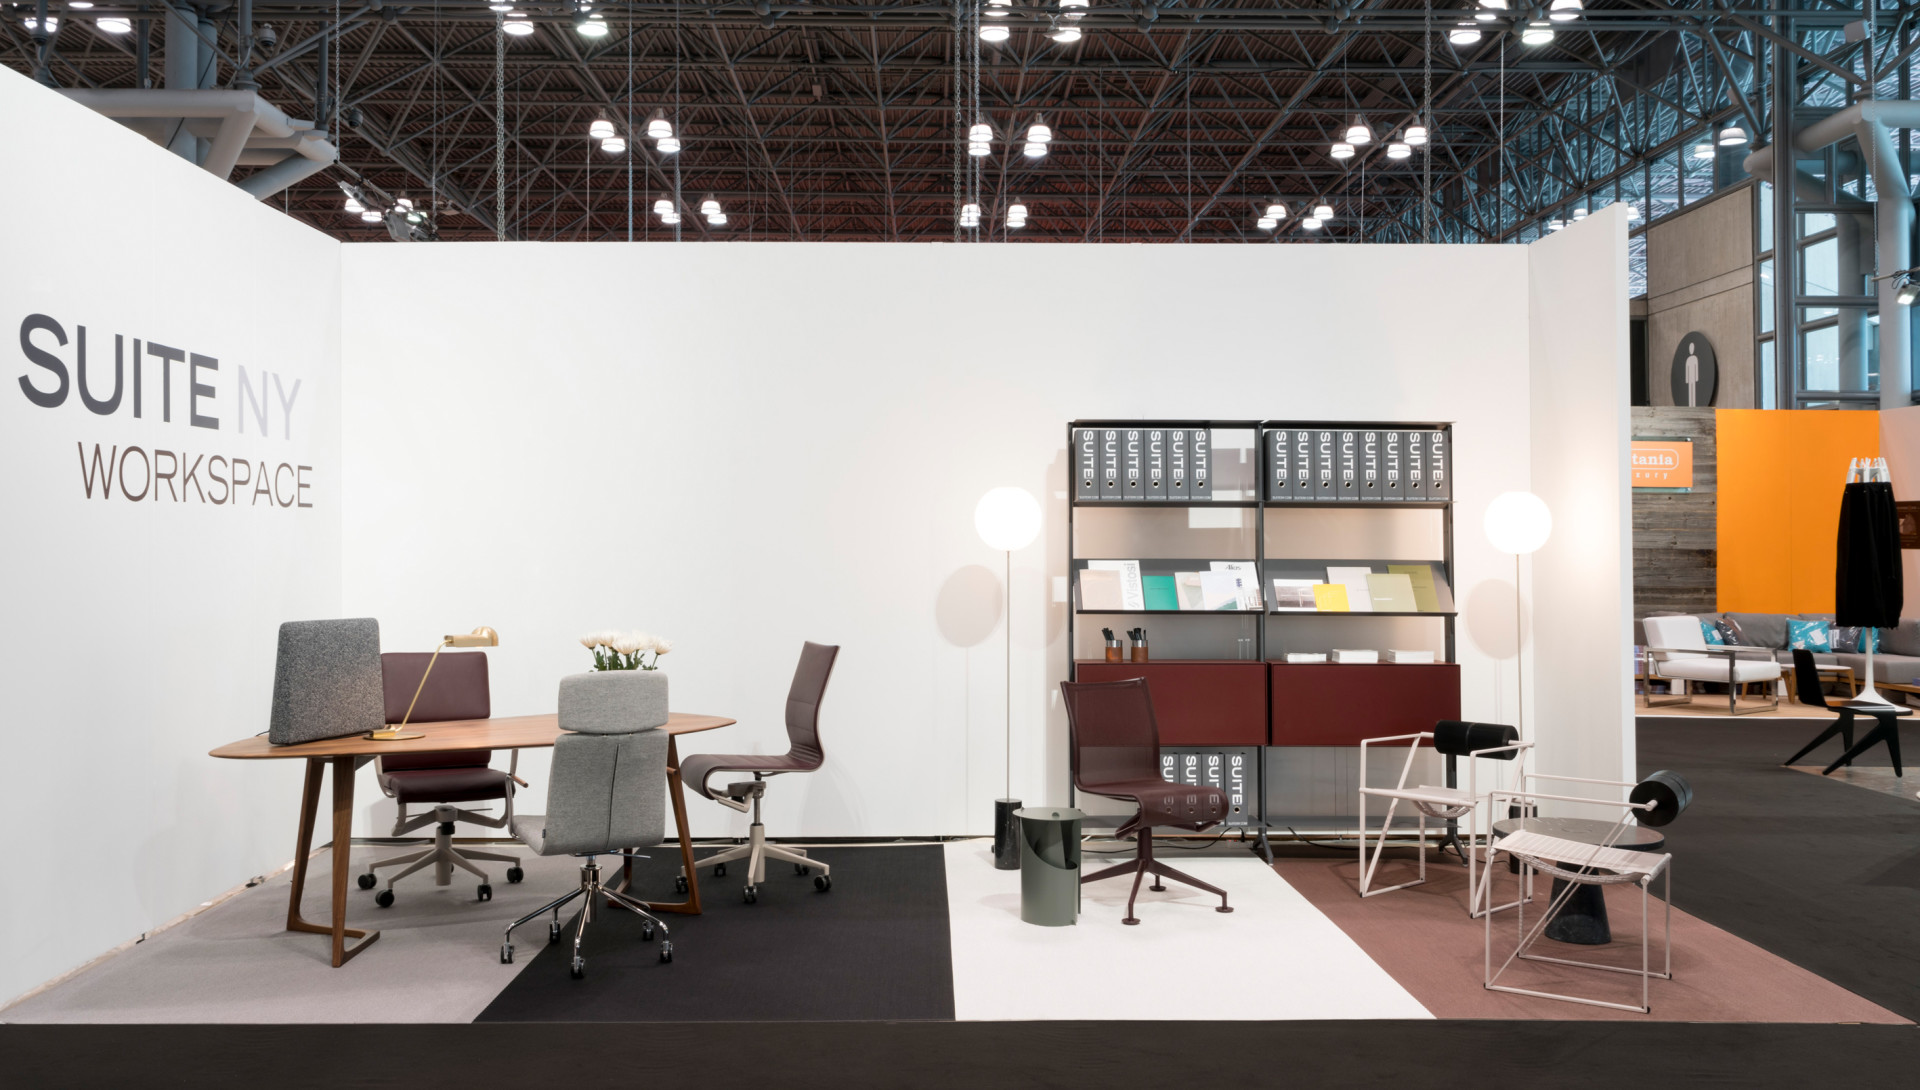 ICFF 2019 What To Expect From This Event In New York City 7 icff 2019 ICFF 2019: What To Expect From This Event In New York City! ICFF 2019 What To Expect From This Event In New York City 7